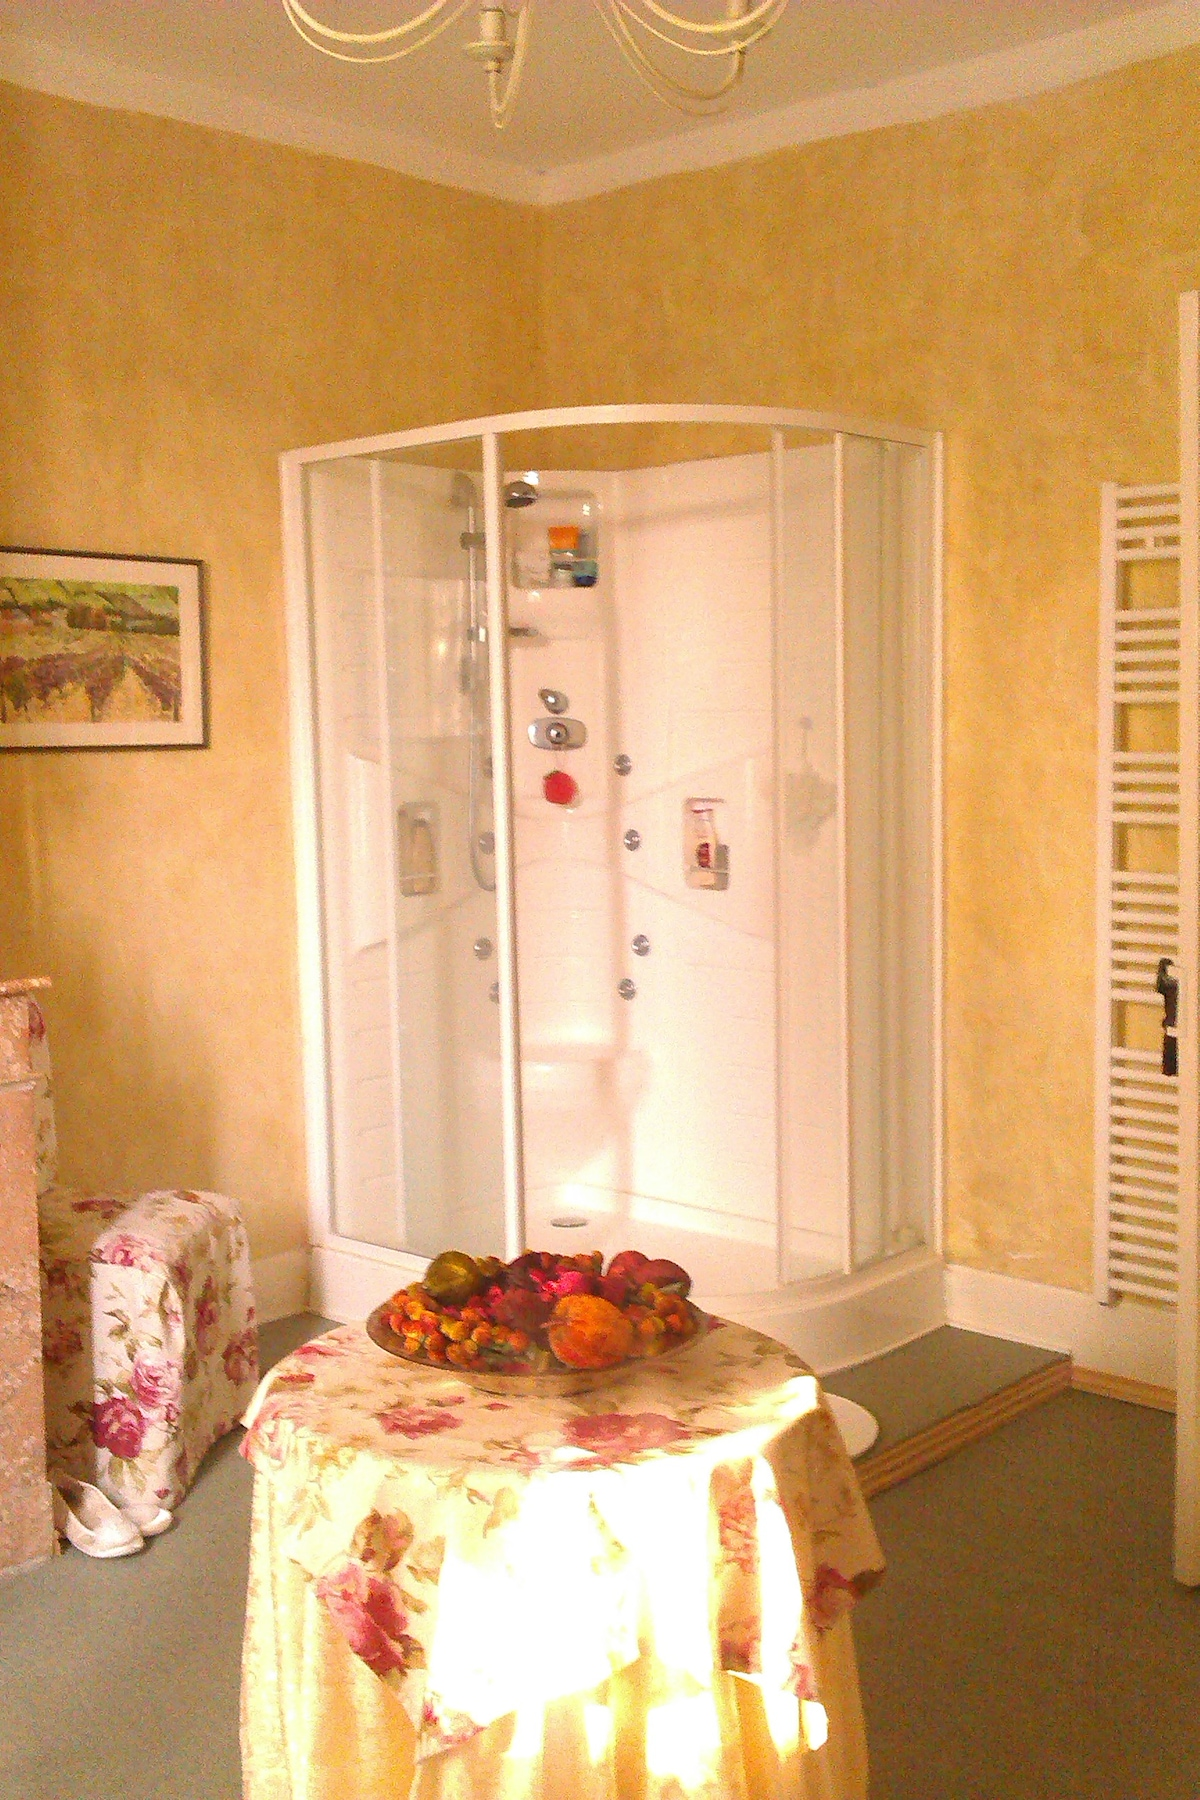 Main bathroom complete with power shower is for guests use solely and is adjacent to the master bedroom.